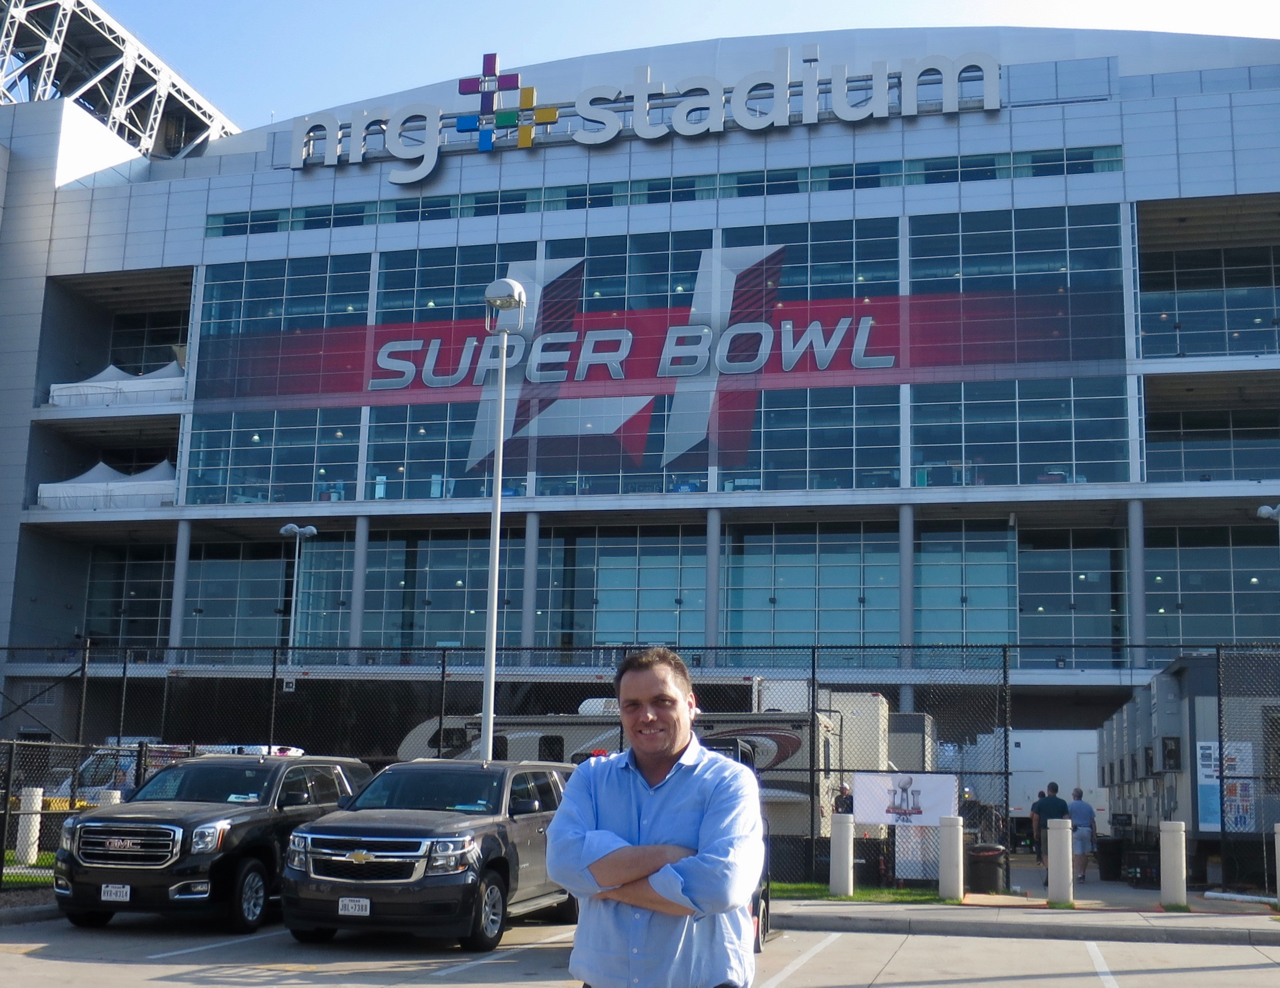 Mike Davies says Super Bowl planning is going well two days before the big game.